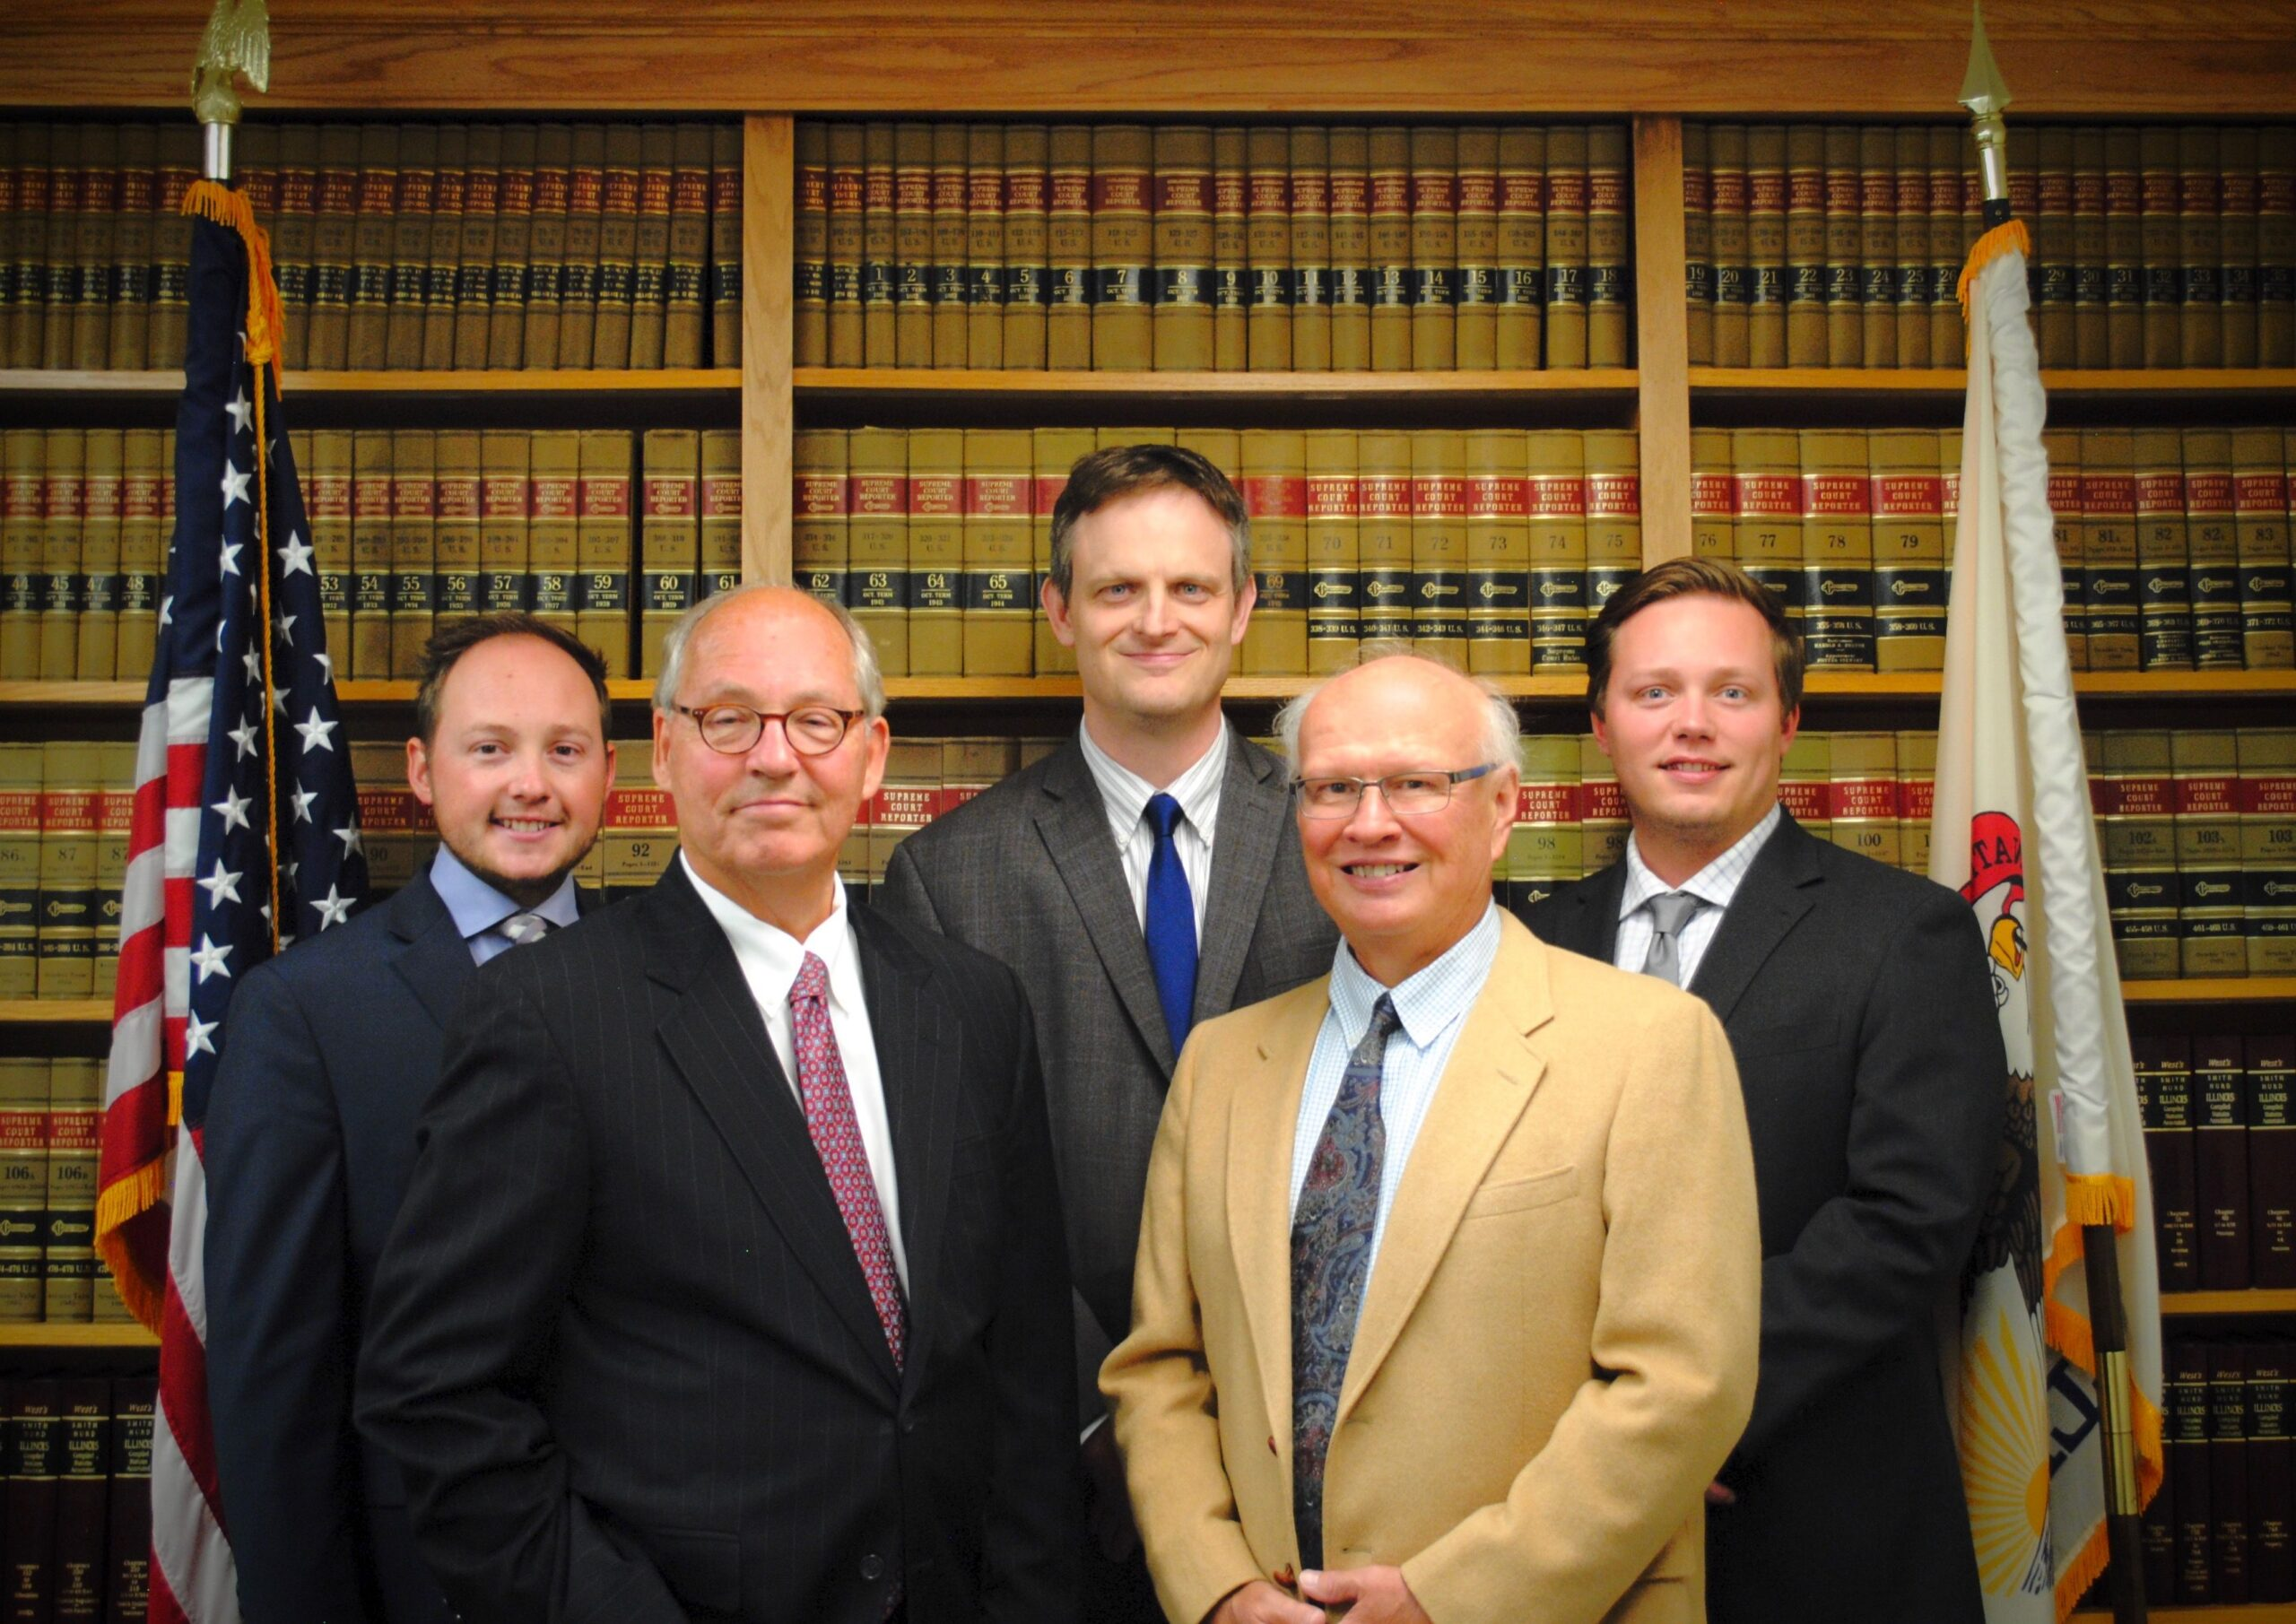 Crosby Law Firm - Practice Areas